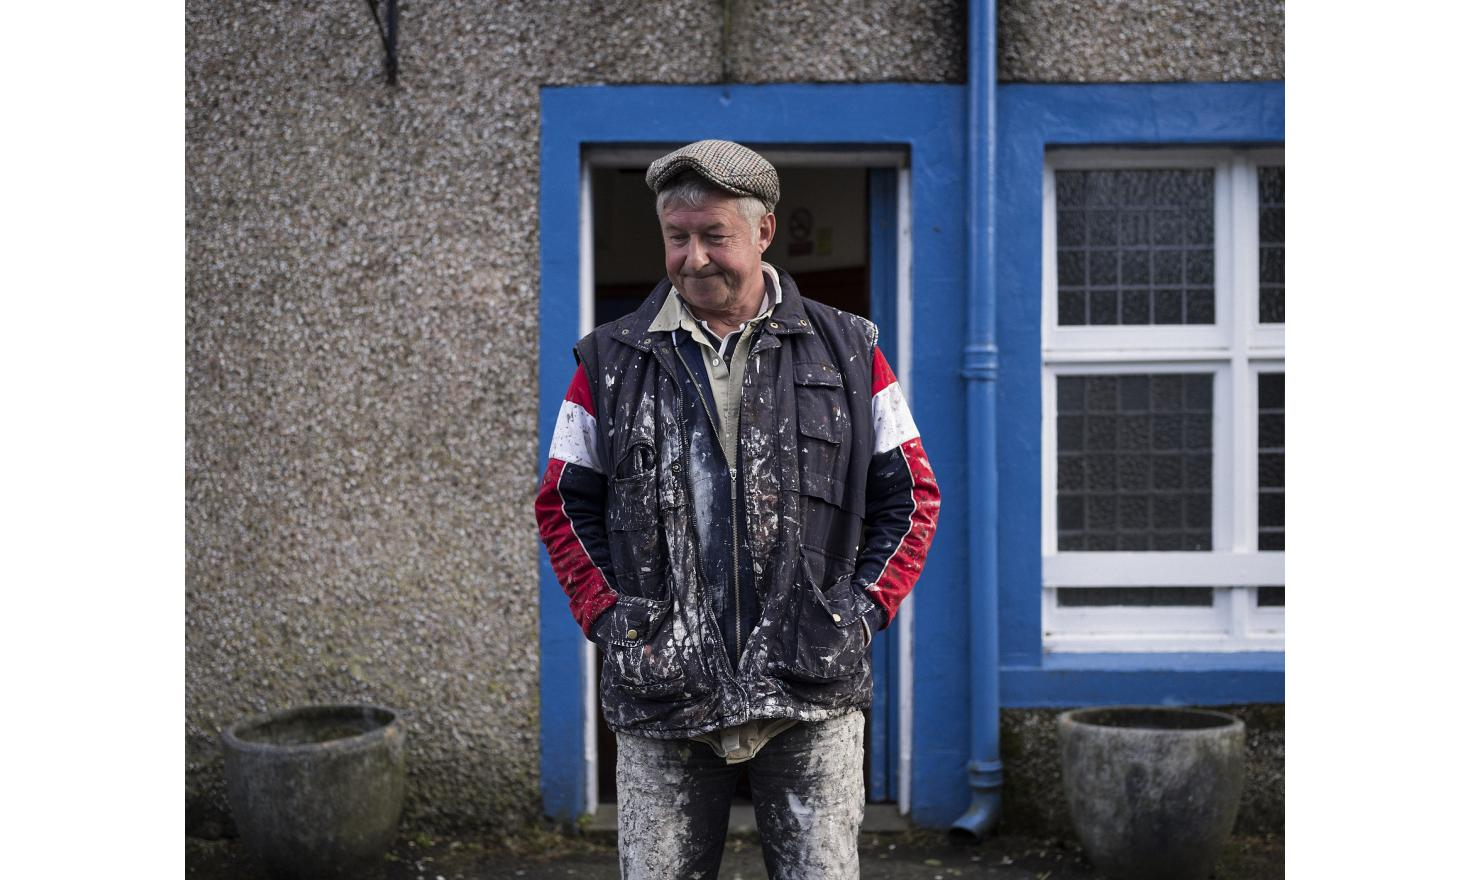 Jeff Bailes lives in Newscastleton, Scotland. He didnÕt vote in the British referendum on EU membership as generally disaffected with British politics. A year after the vote he's convinced that Brexit is bad news for the UK.